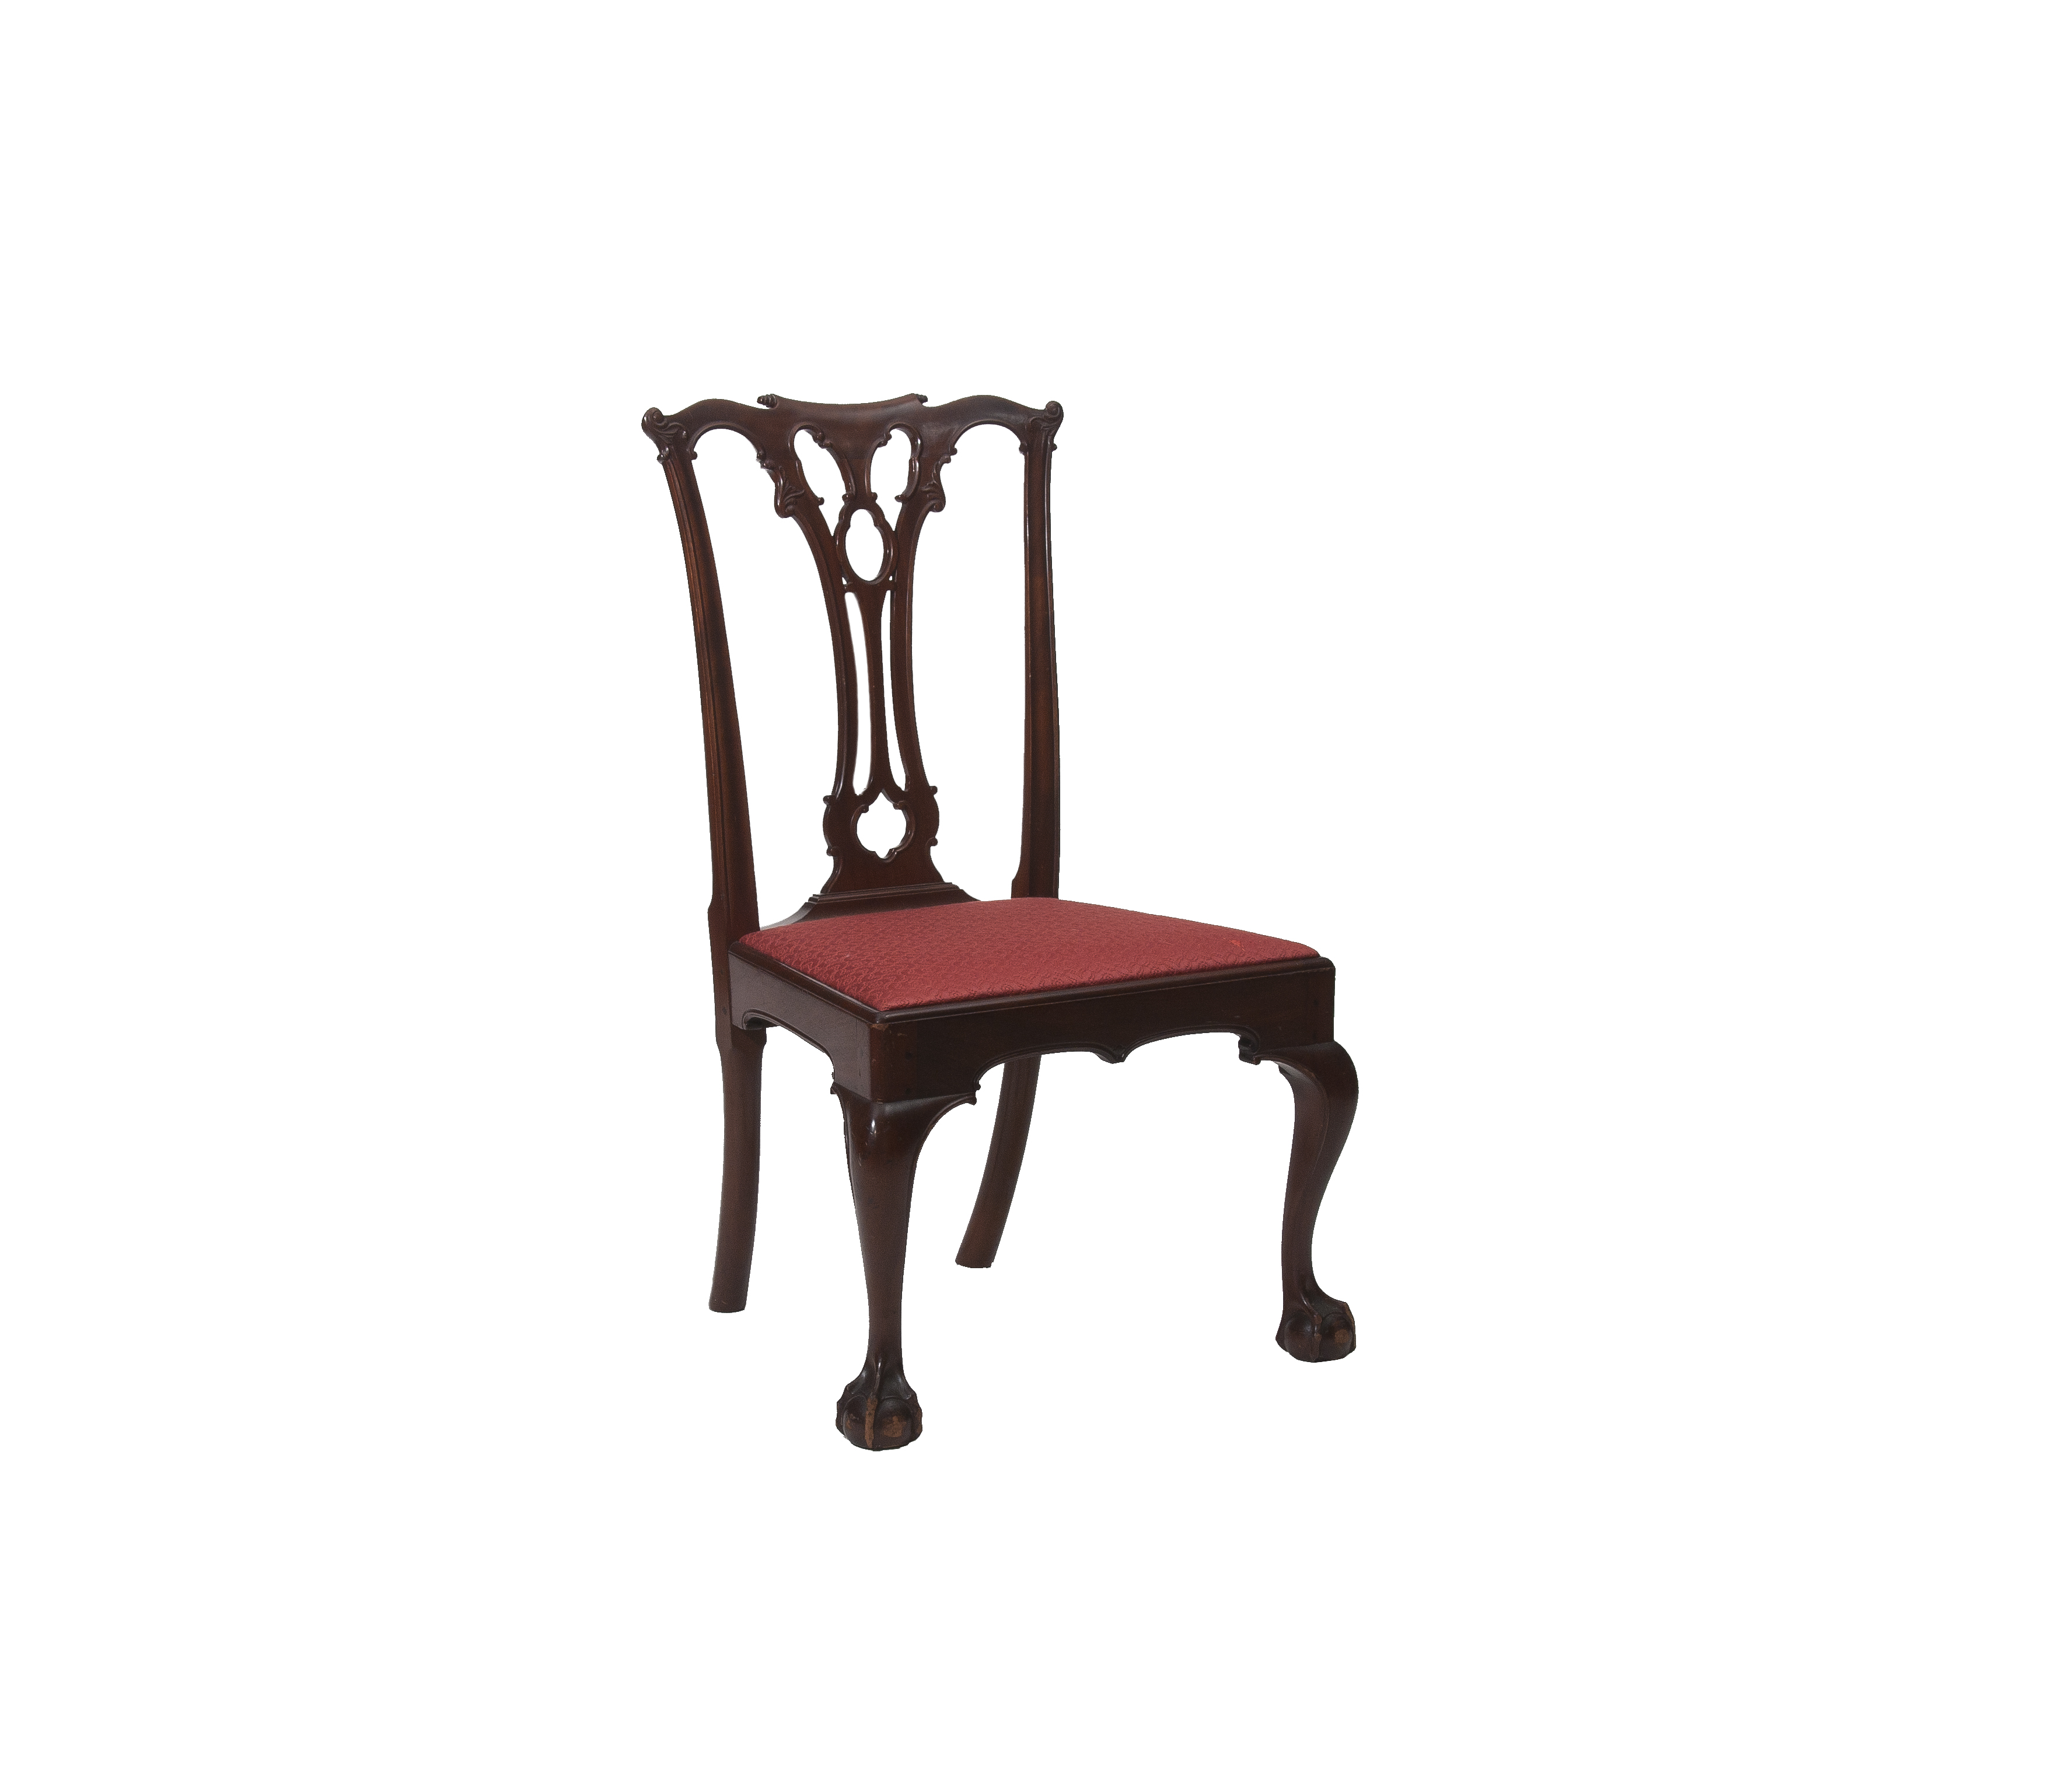 chippendale side chair. Mahogany Chippendale Side Chair. Enlarge Image Chair I